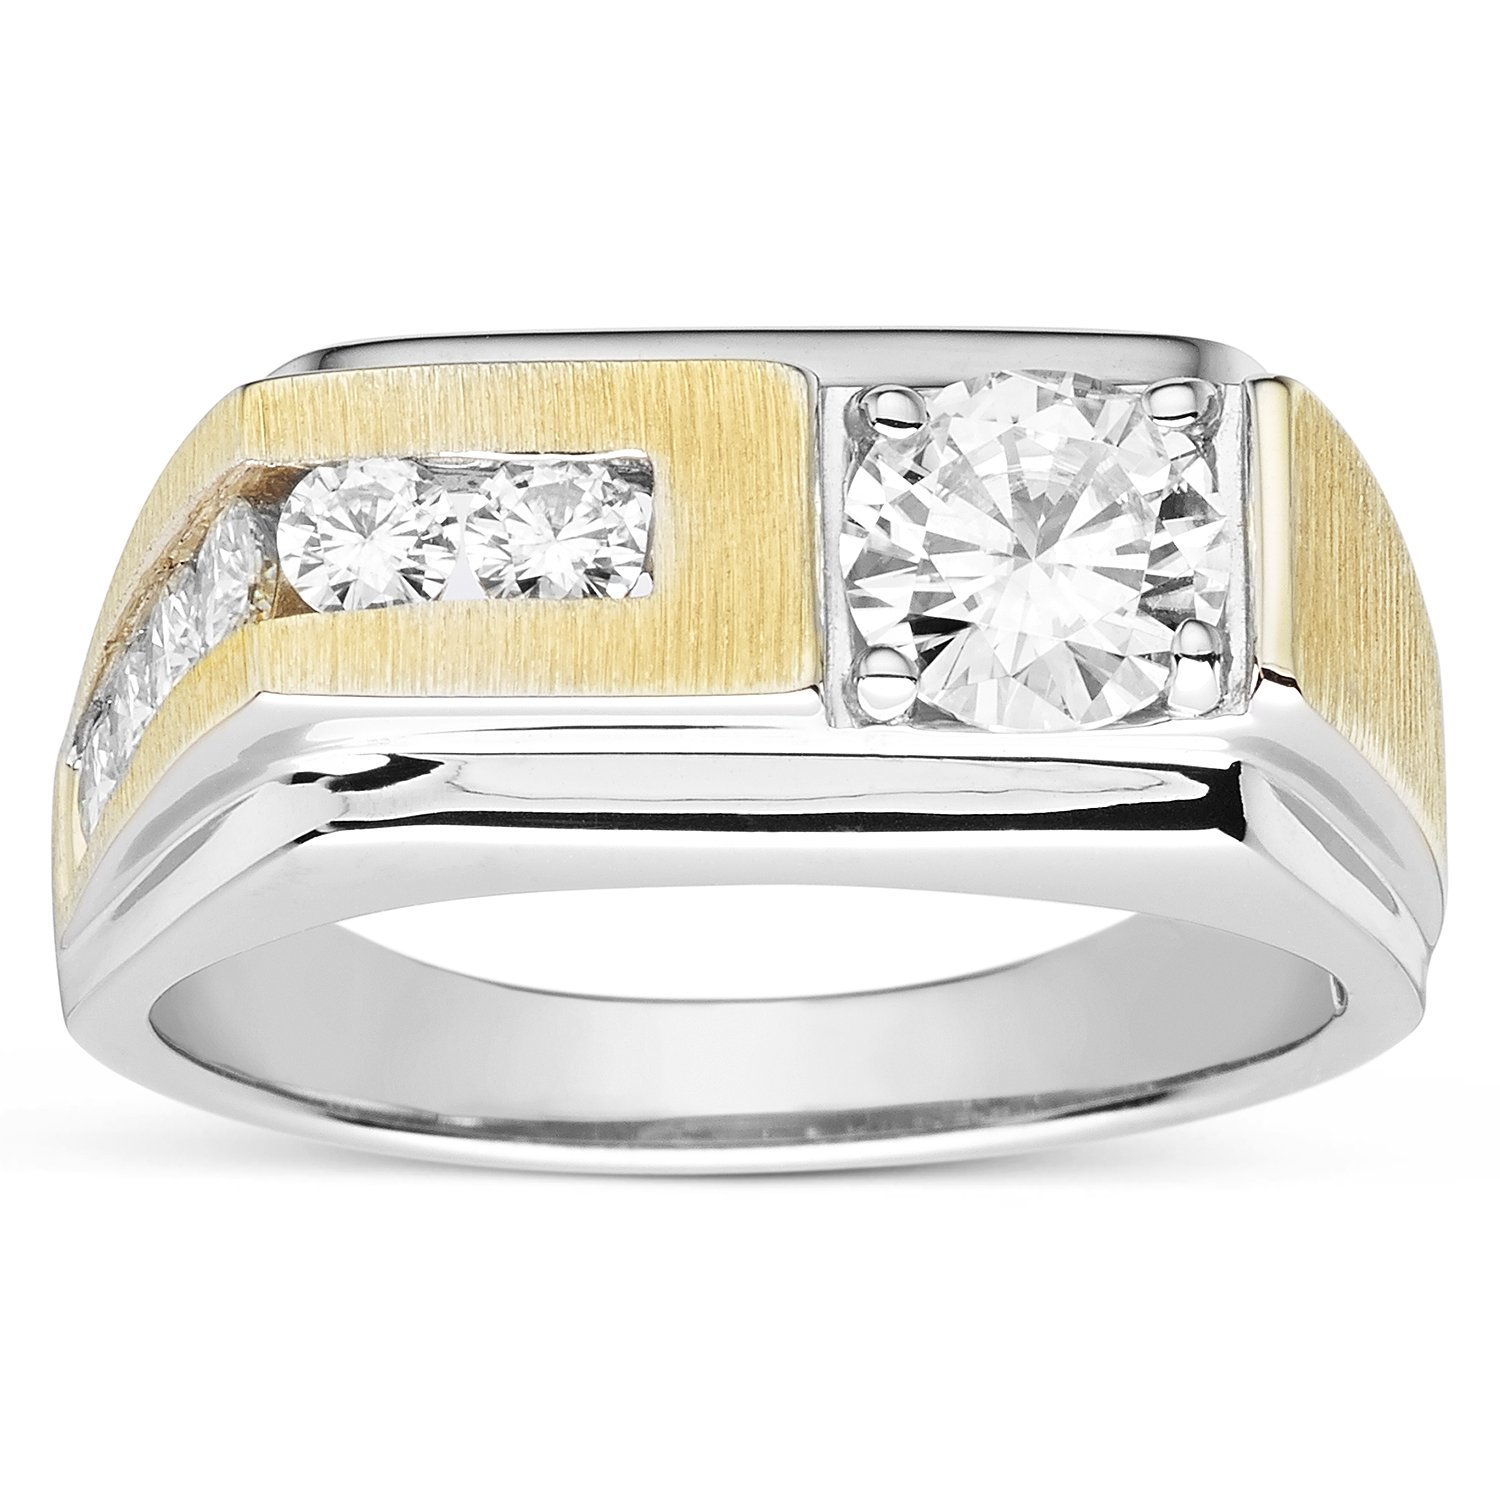 Forever Classic Men�s Round 6.5mm Moissanite Wedding Band-size 12, 1.60cttw DEW By Charles & Colvard